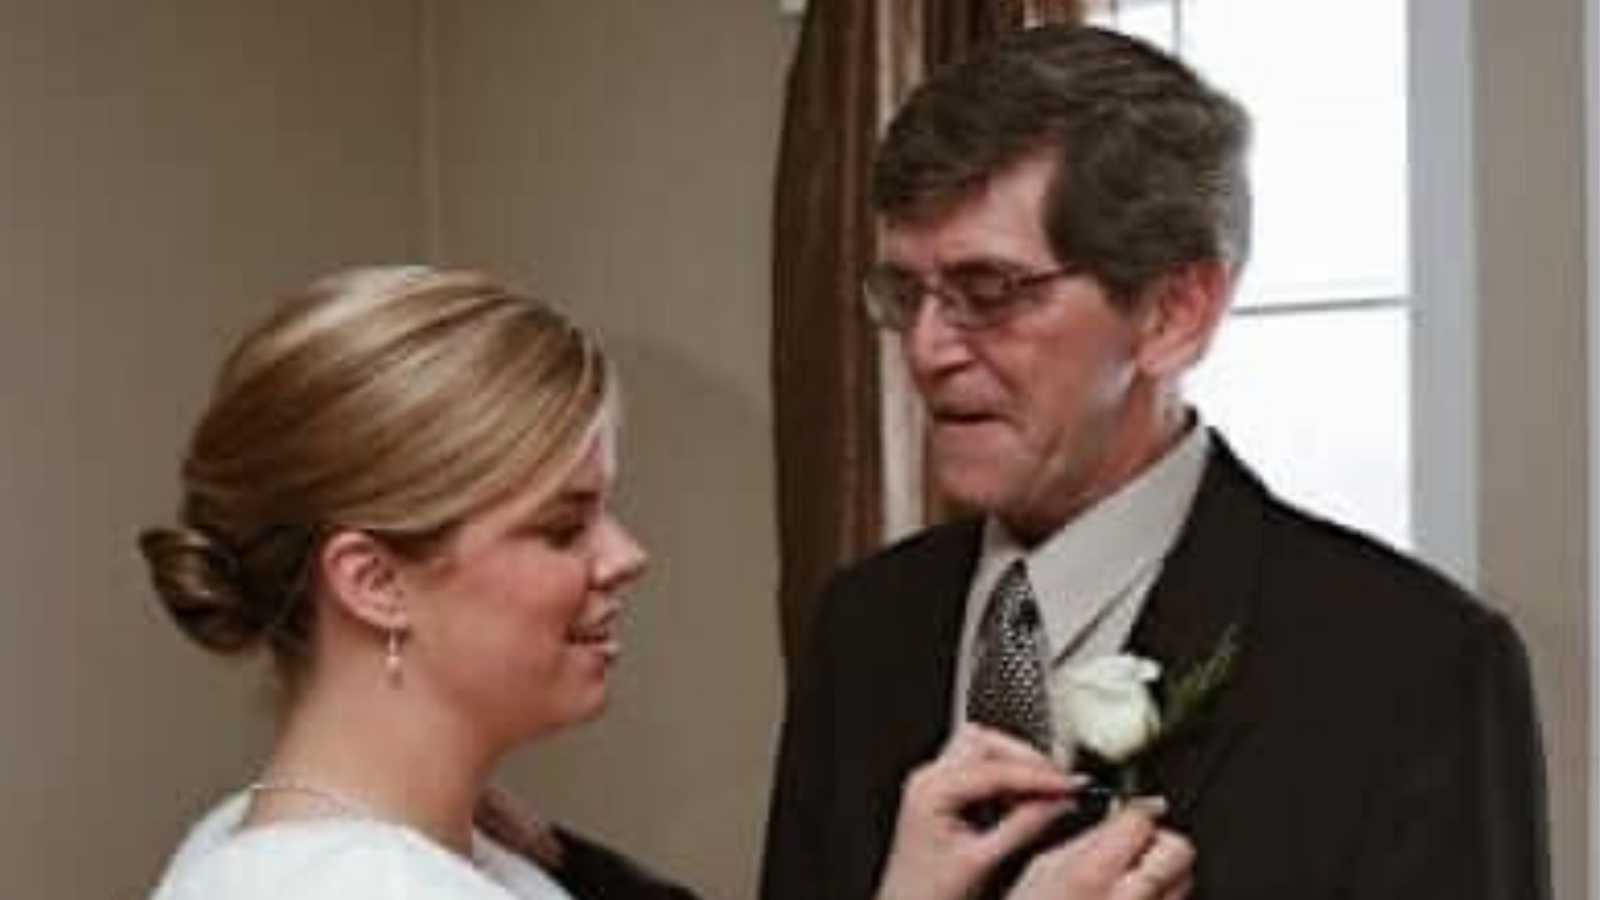 woman with her father, pinning his suit